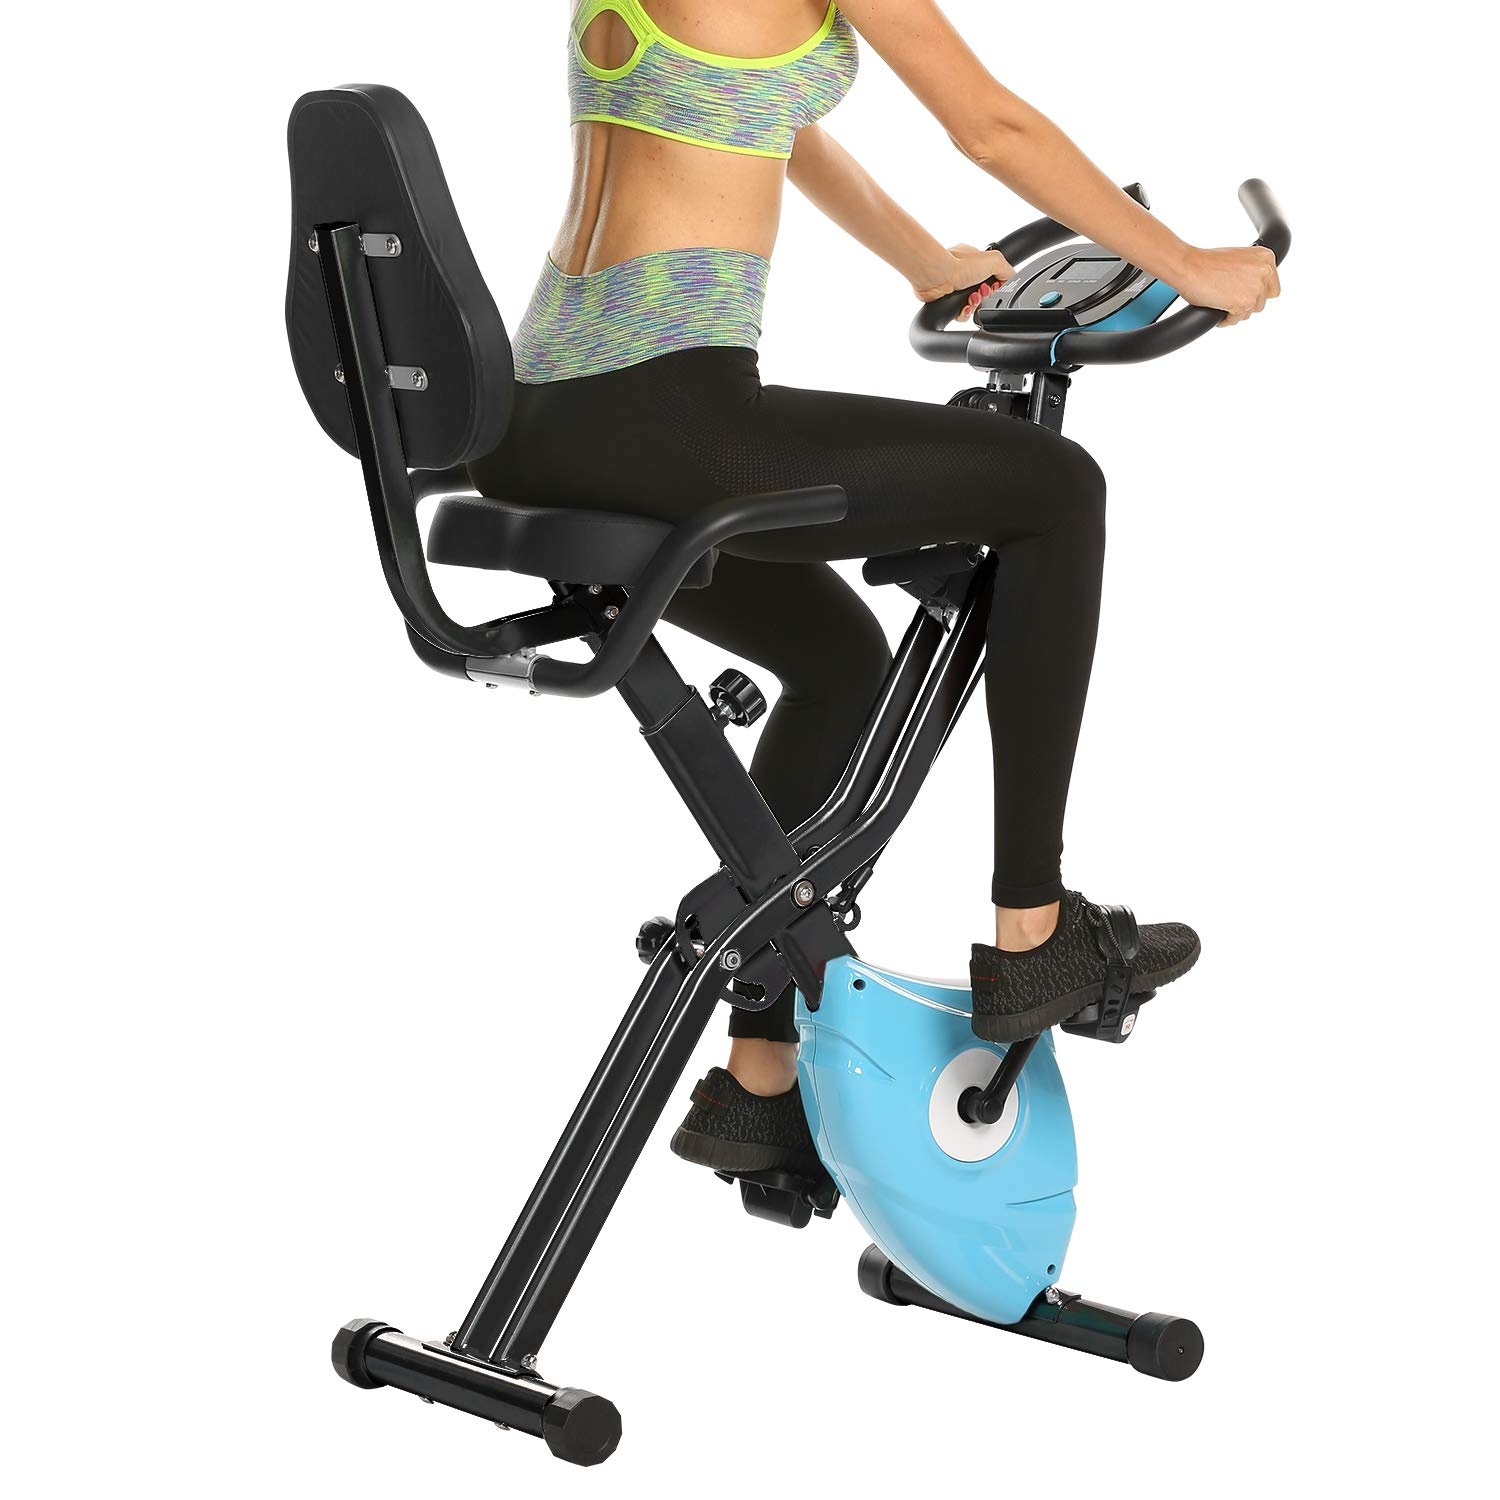 ANCHEER 2 in1 Folding Exercise Bike, Slim Cycle Indoor Stationary Bike with 10-Level Adjustable Magnetic Resistance and Arm Training Bands (Blue) by ANCHEER (Image #6)